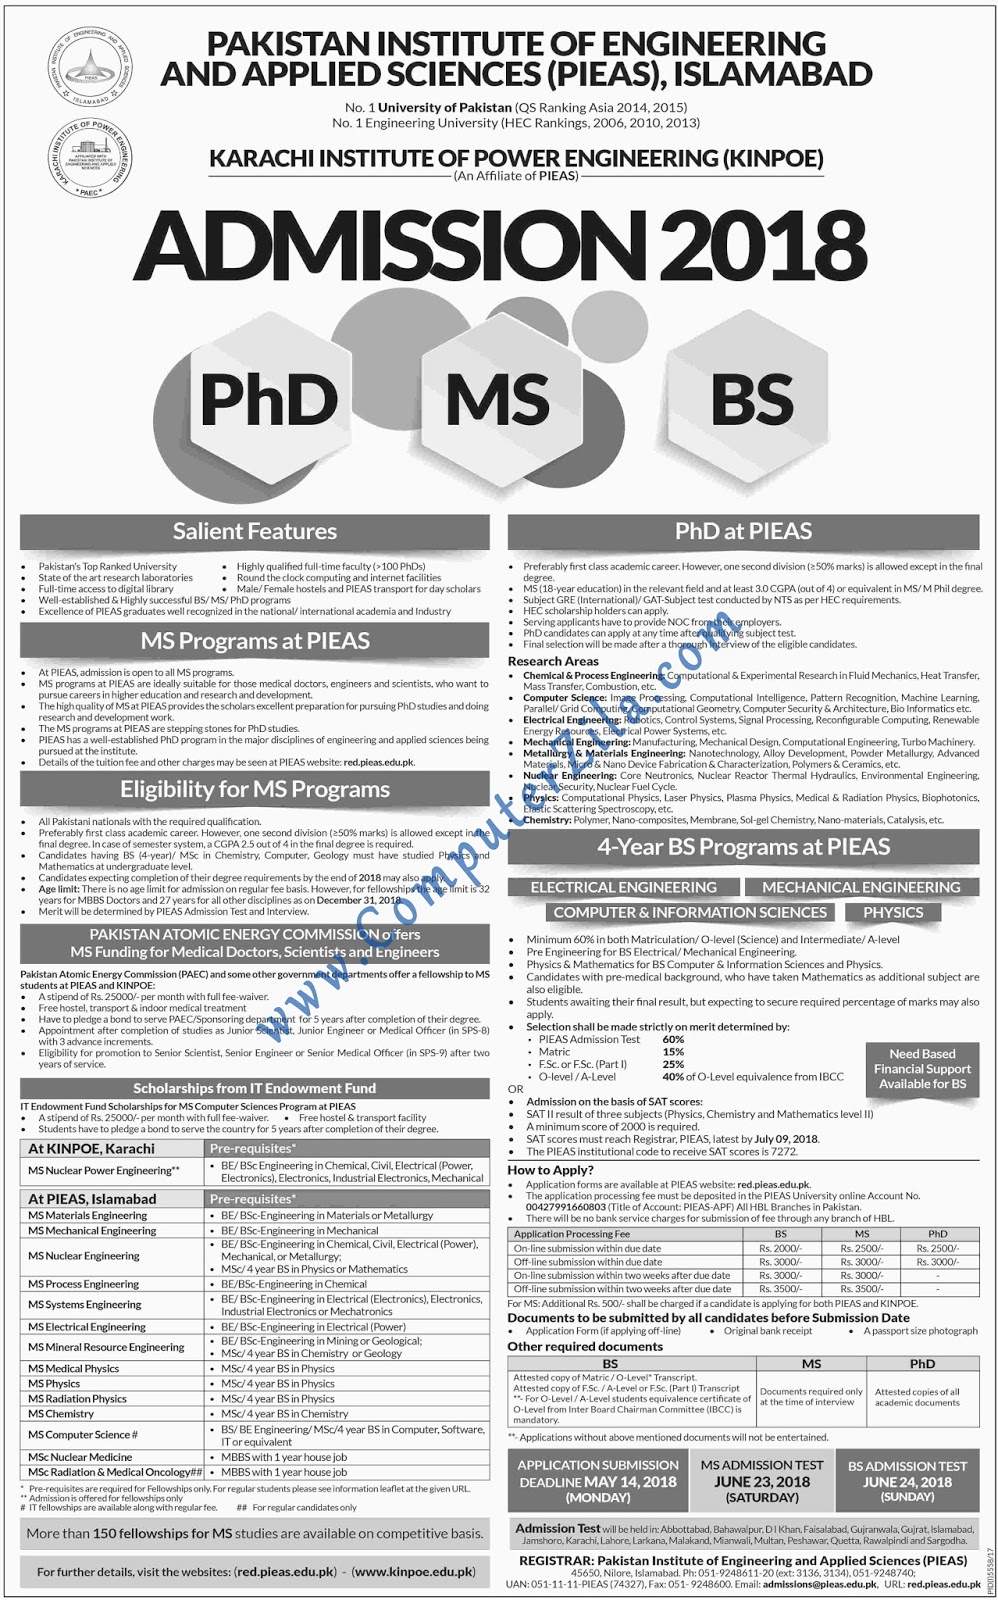 Karachi Institute of Power Engineering Admissions Fall 2018